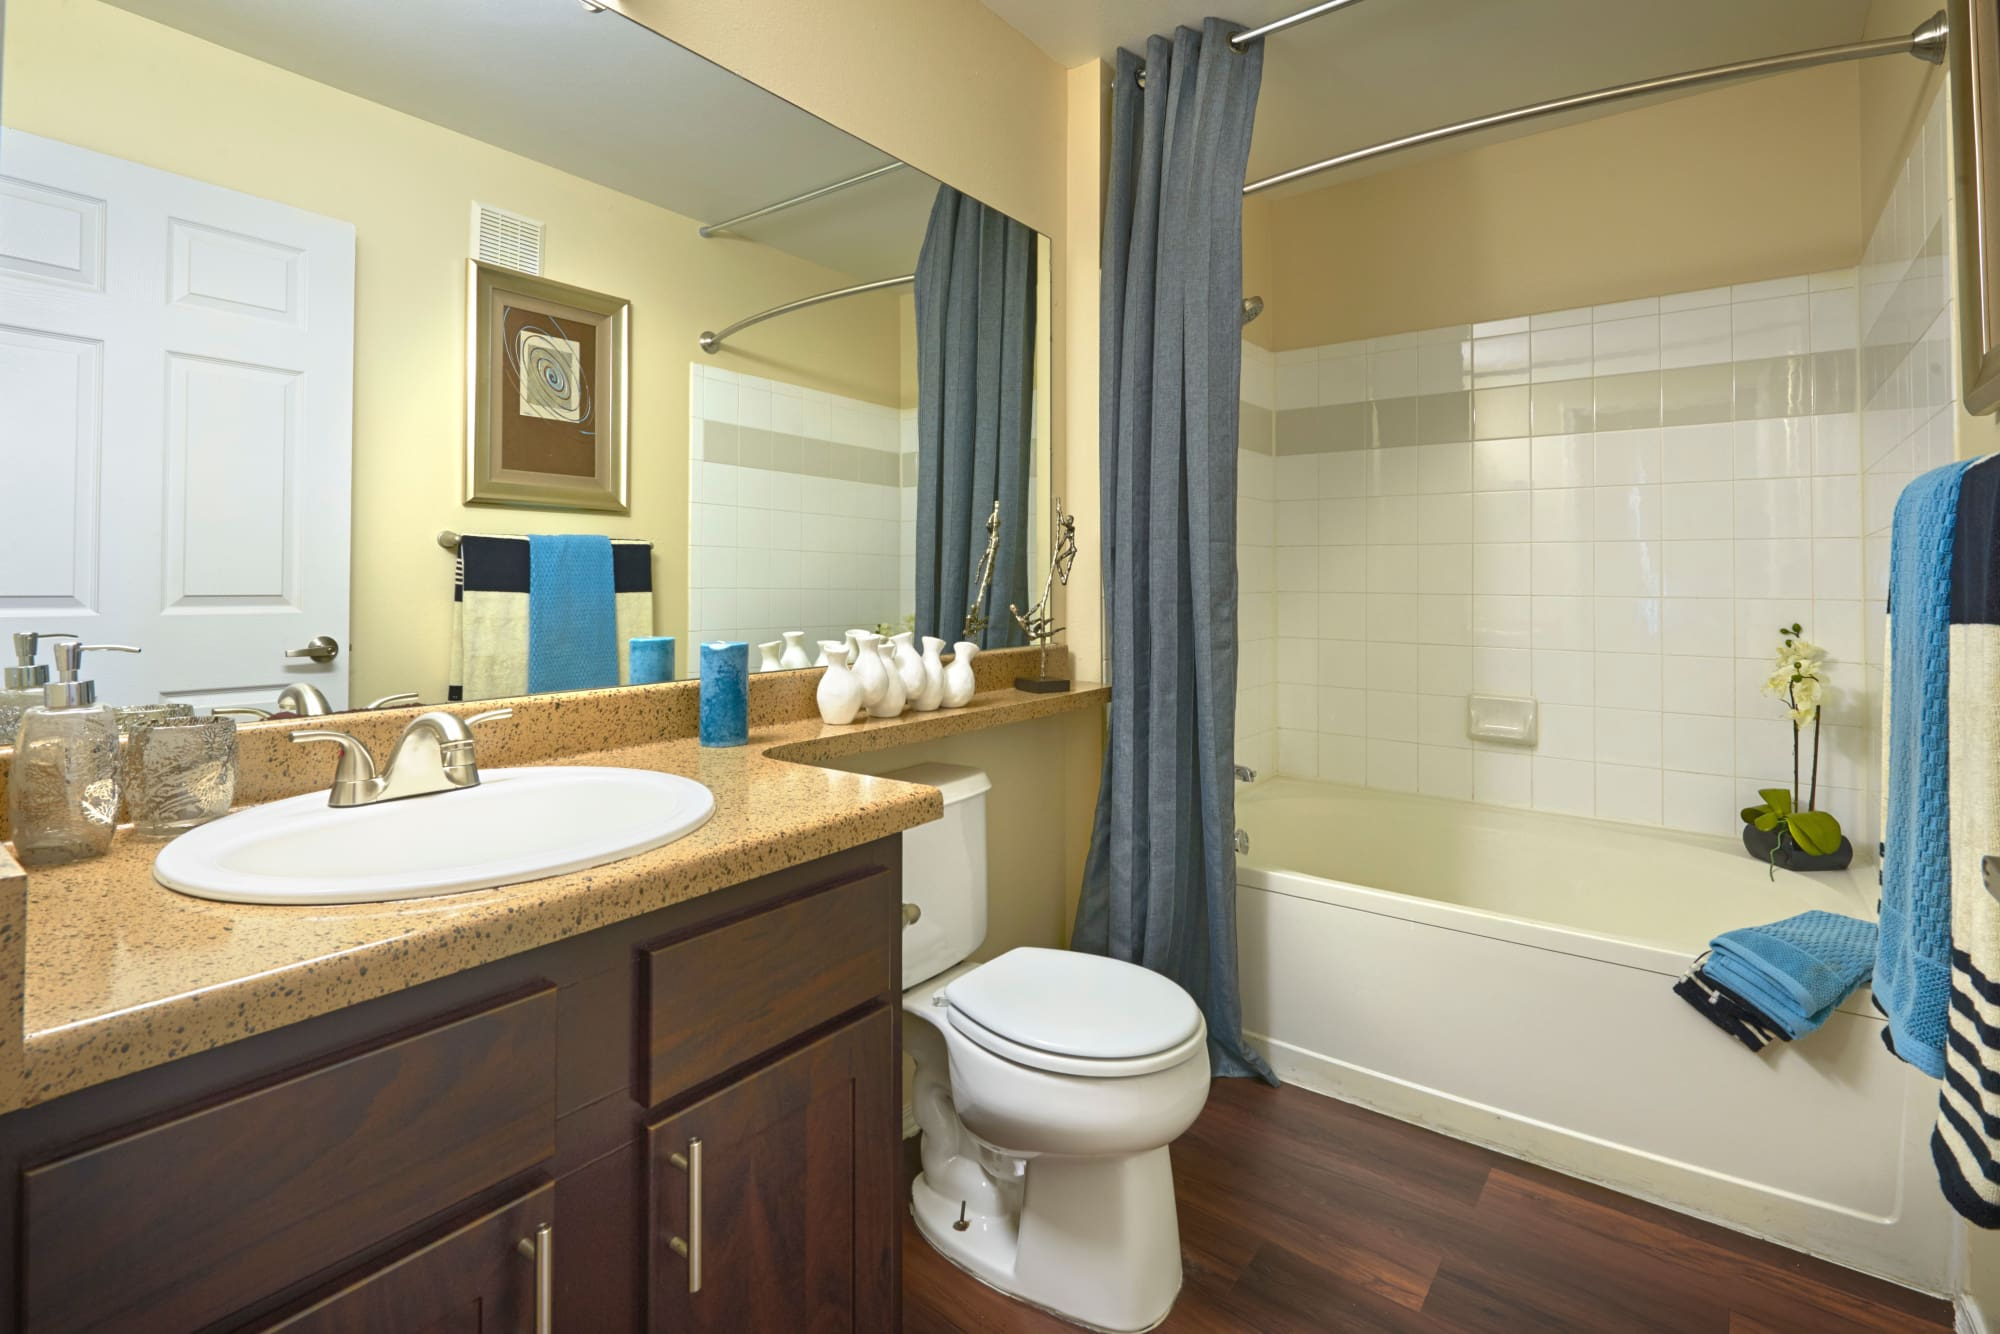 Renovated bathroom at Promenade at Hunter's Glen Apartments in Thornton, Colorado